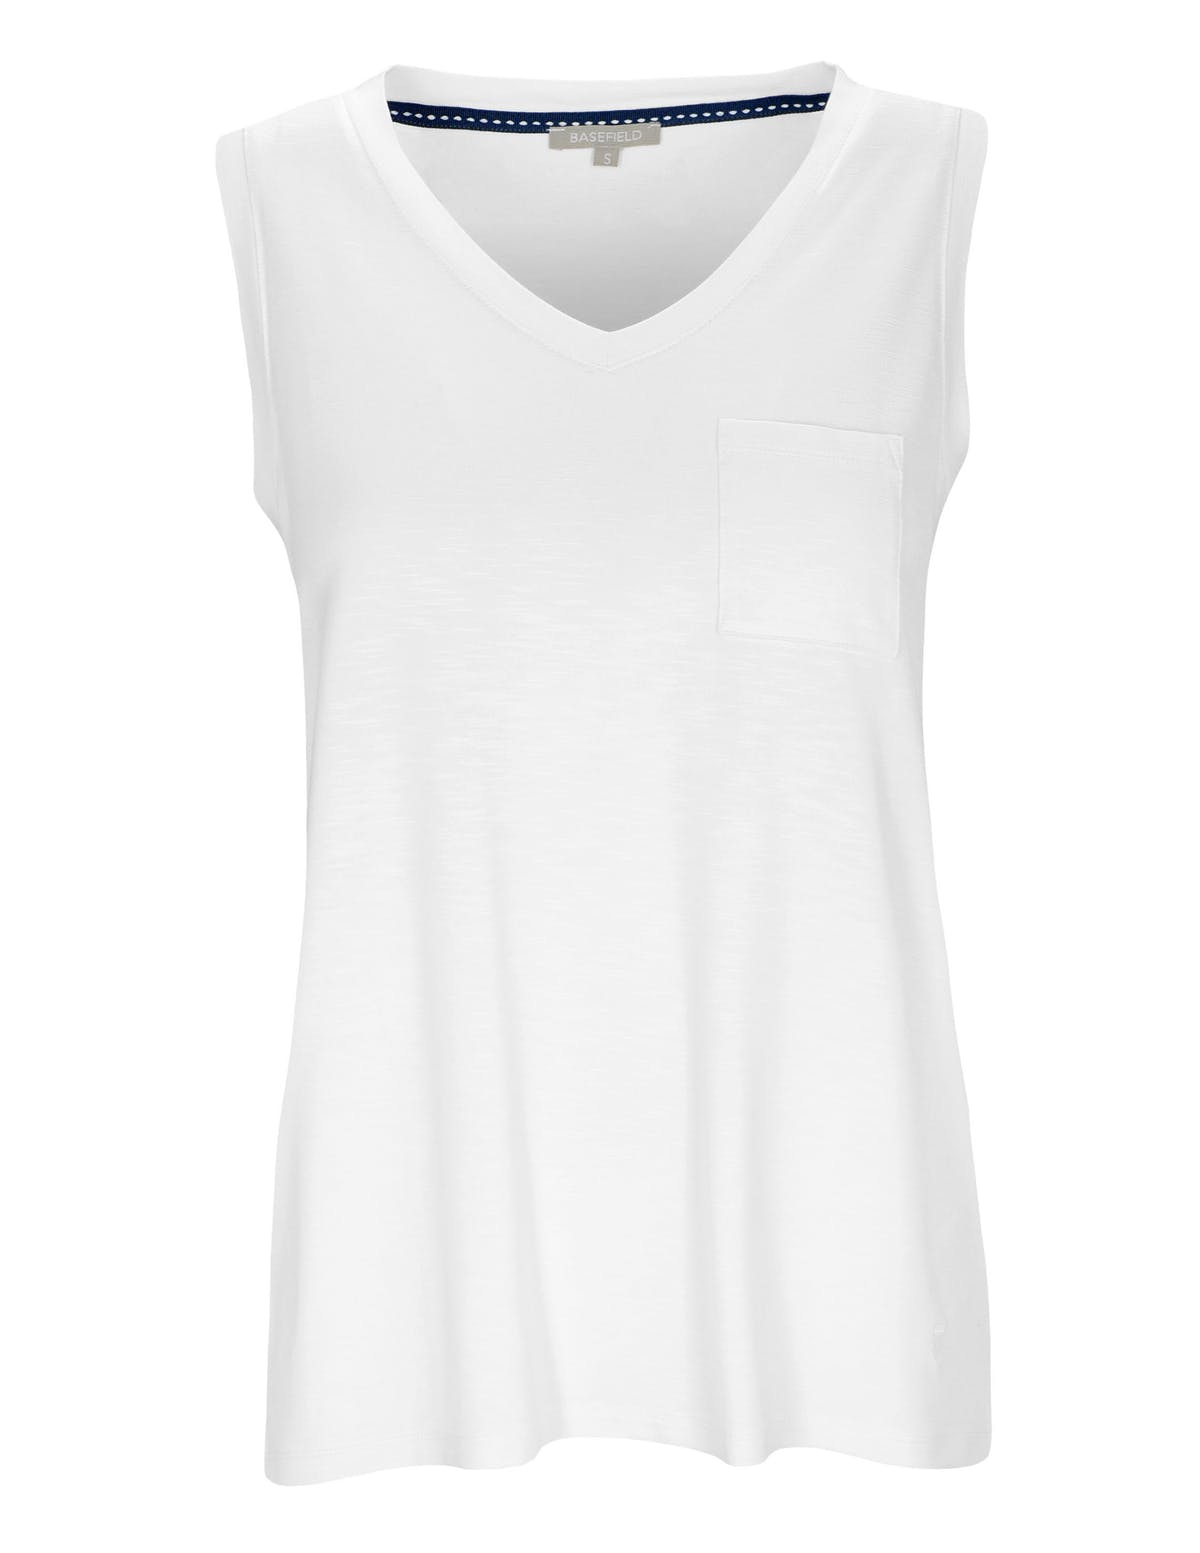 Top Jersey - Bright White